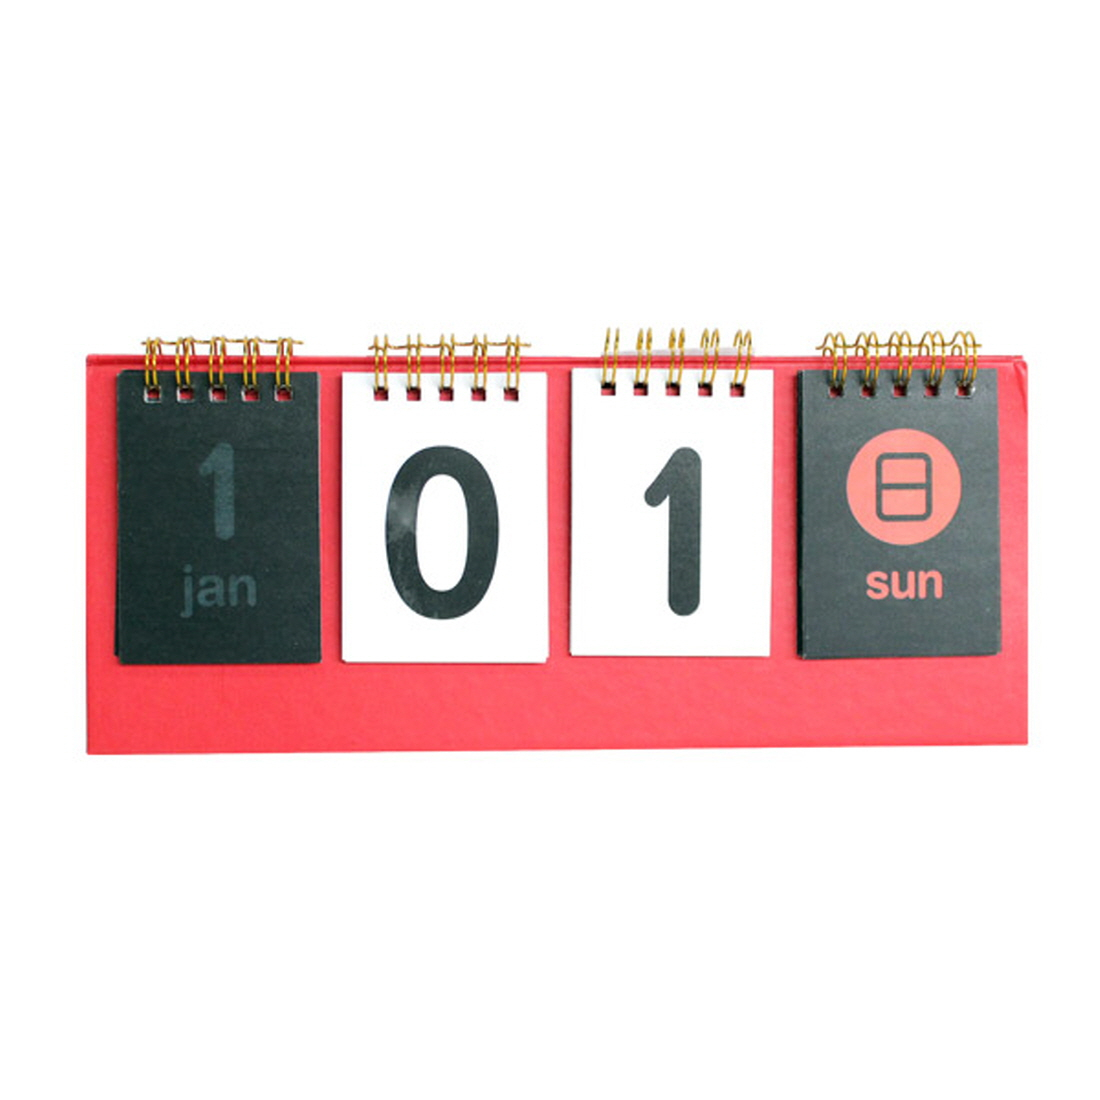 Details About [Vicdream] D-Day Standing Desk Calendar Any Year Count Down  Calendar #red